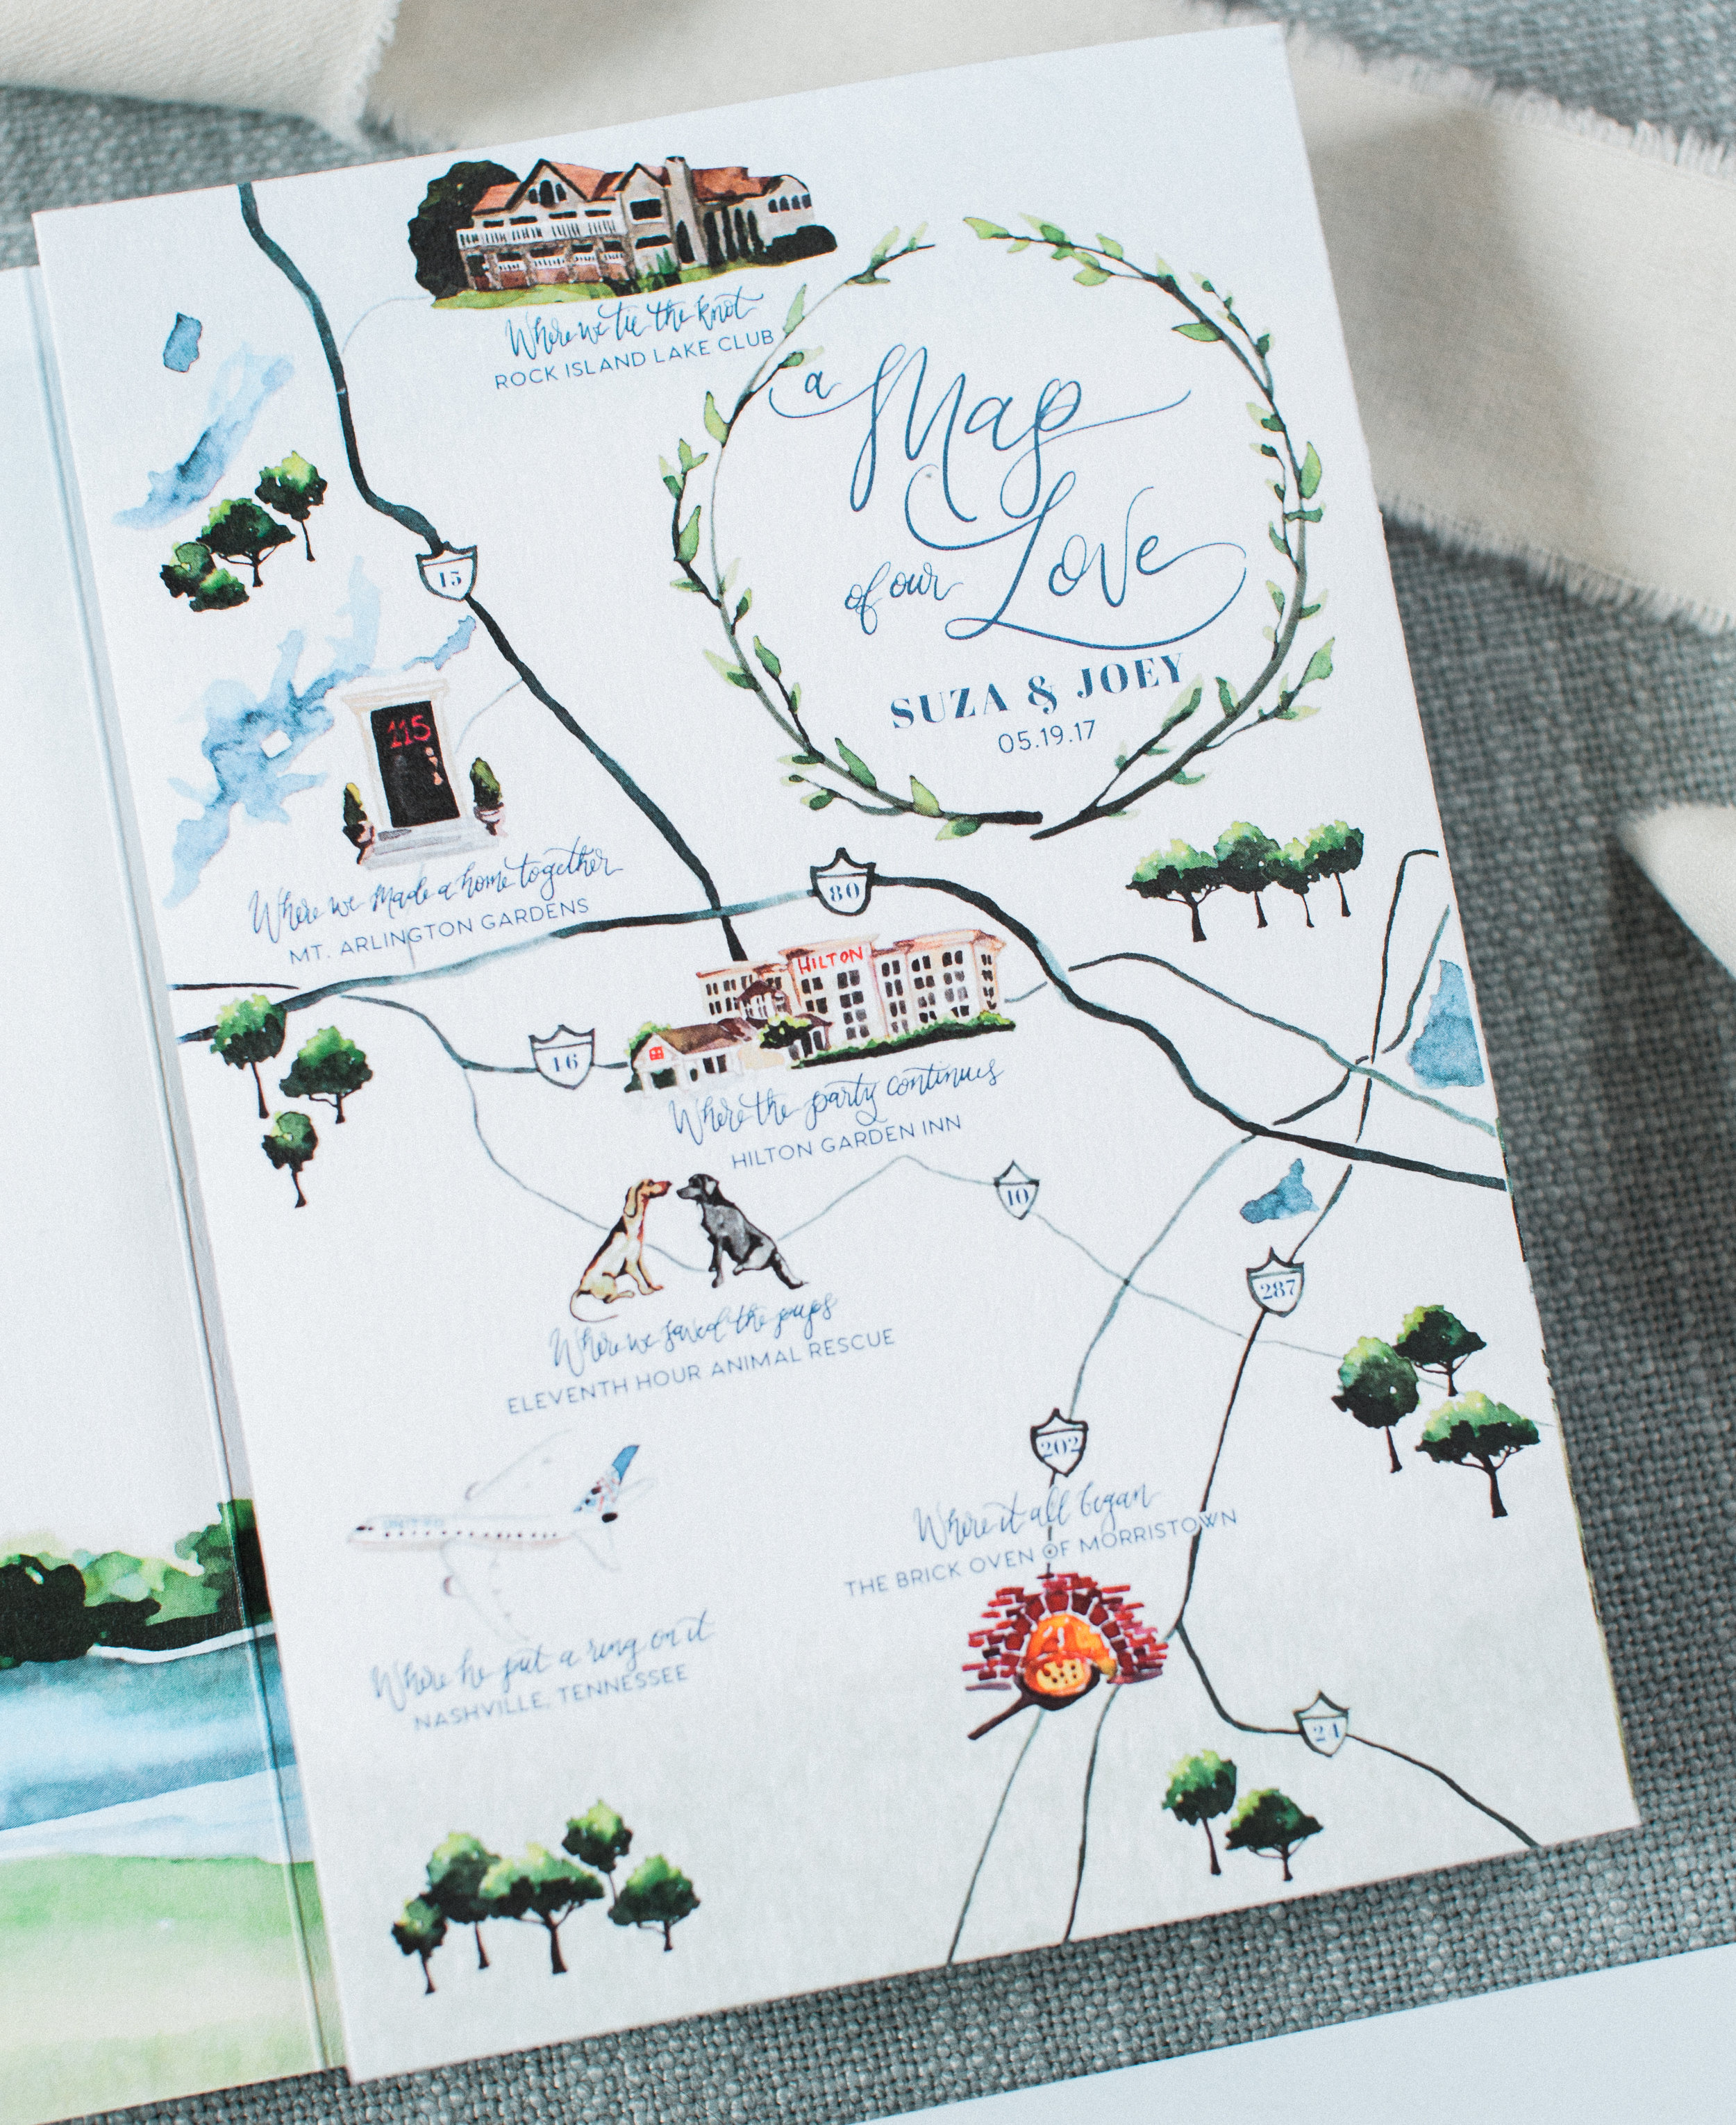 Wedding Map of Our Love